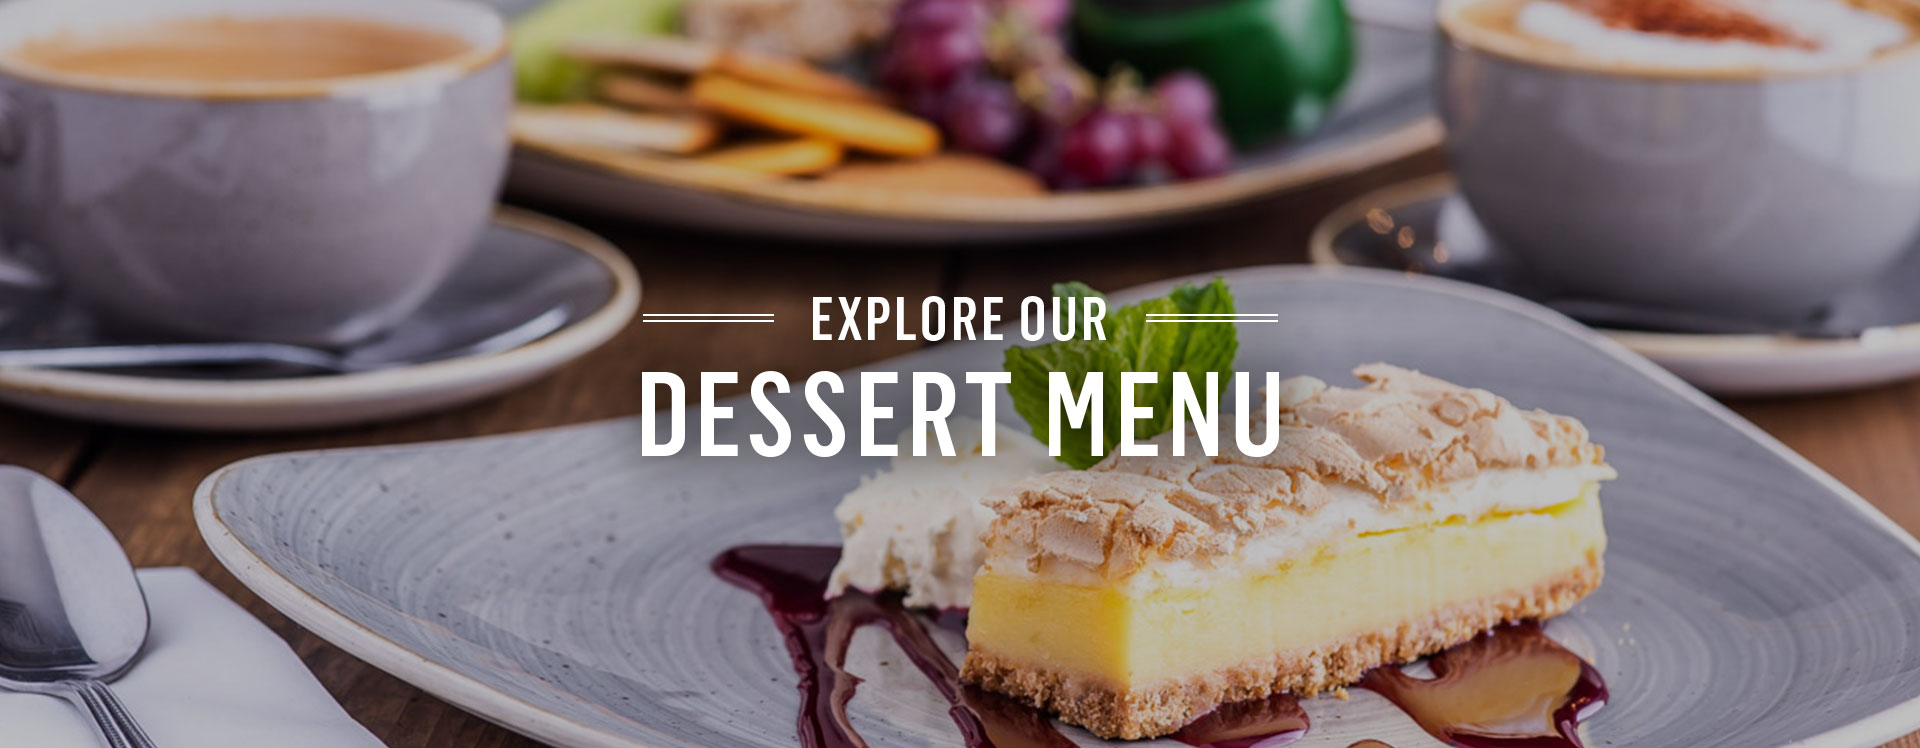 Dessert menu at The York - Book a table